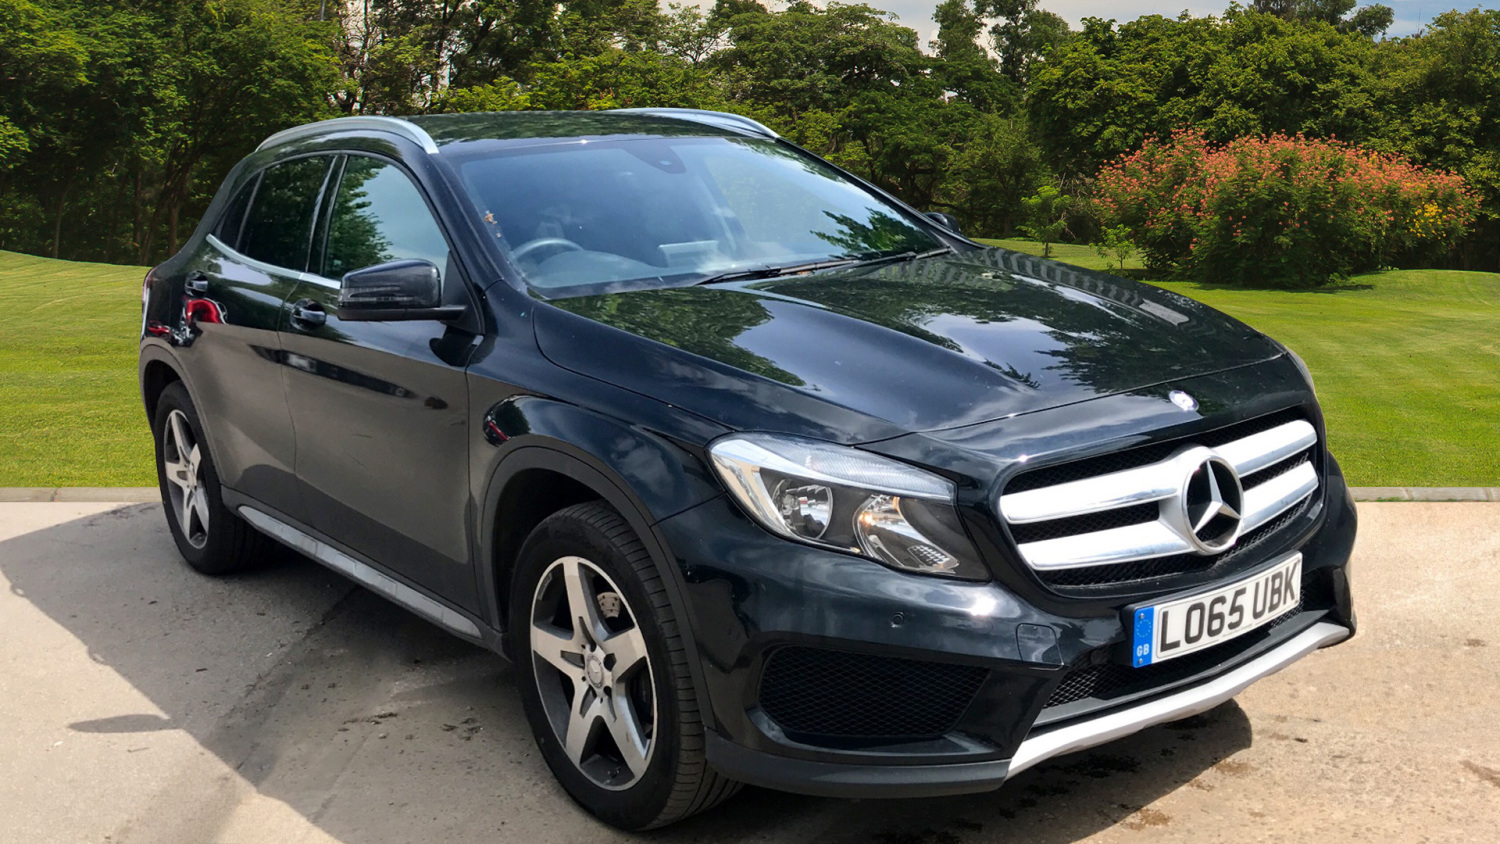 used mercedes benz gla gla 220d 4matic amg line 5dr auto executive diesel hatchback for sale. Black Bedroom Furniture Sets. Home Design Ideas